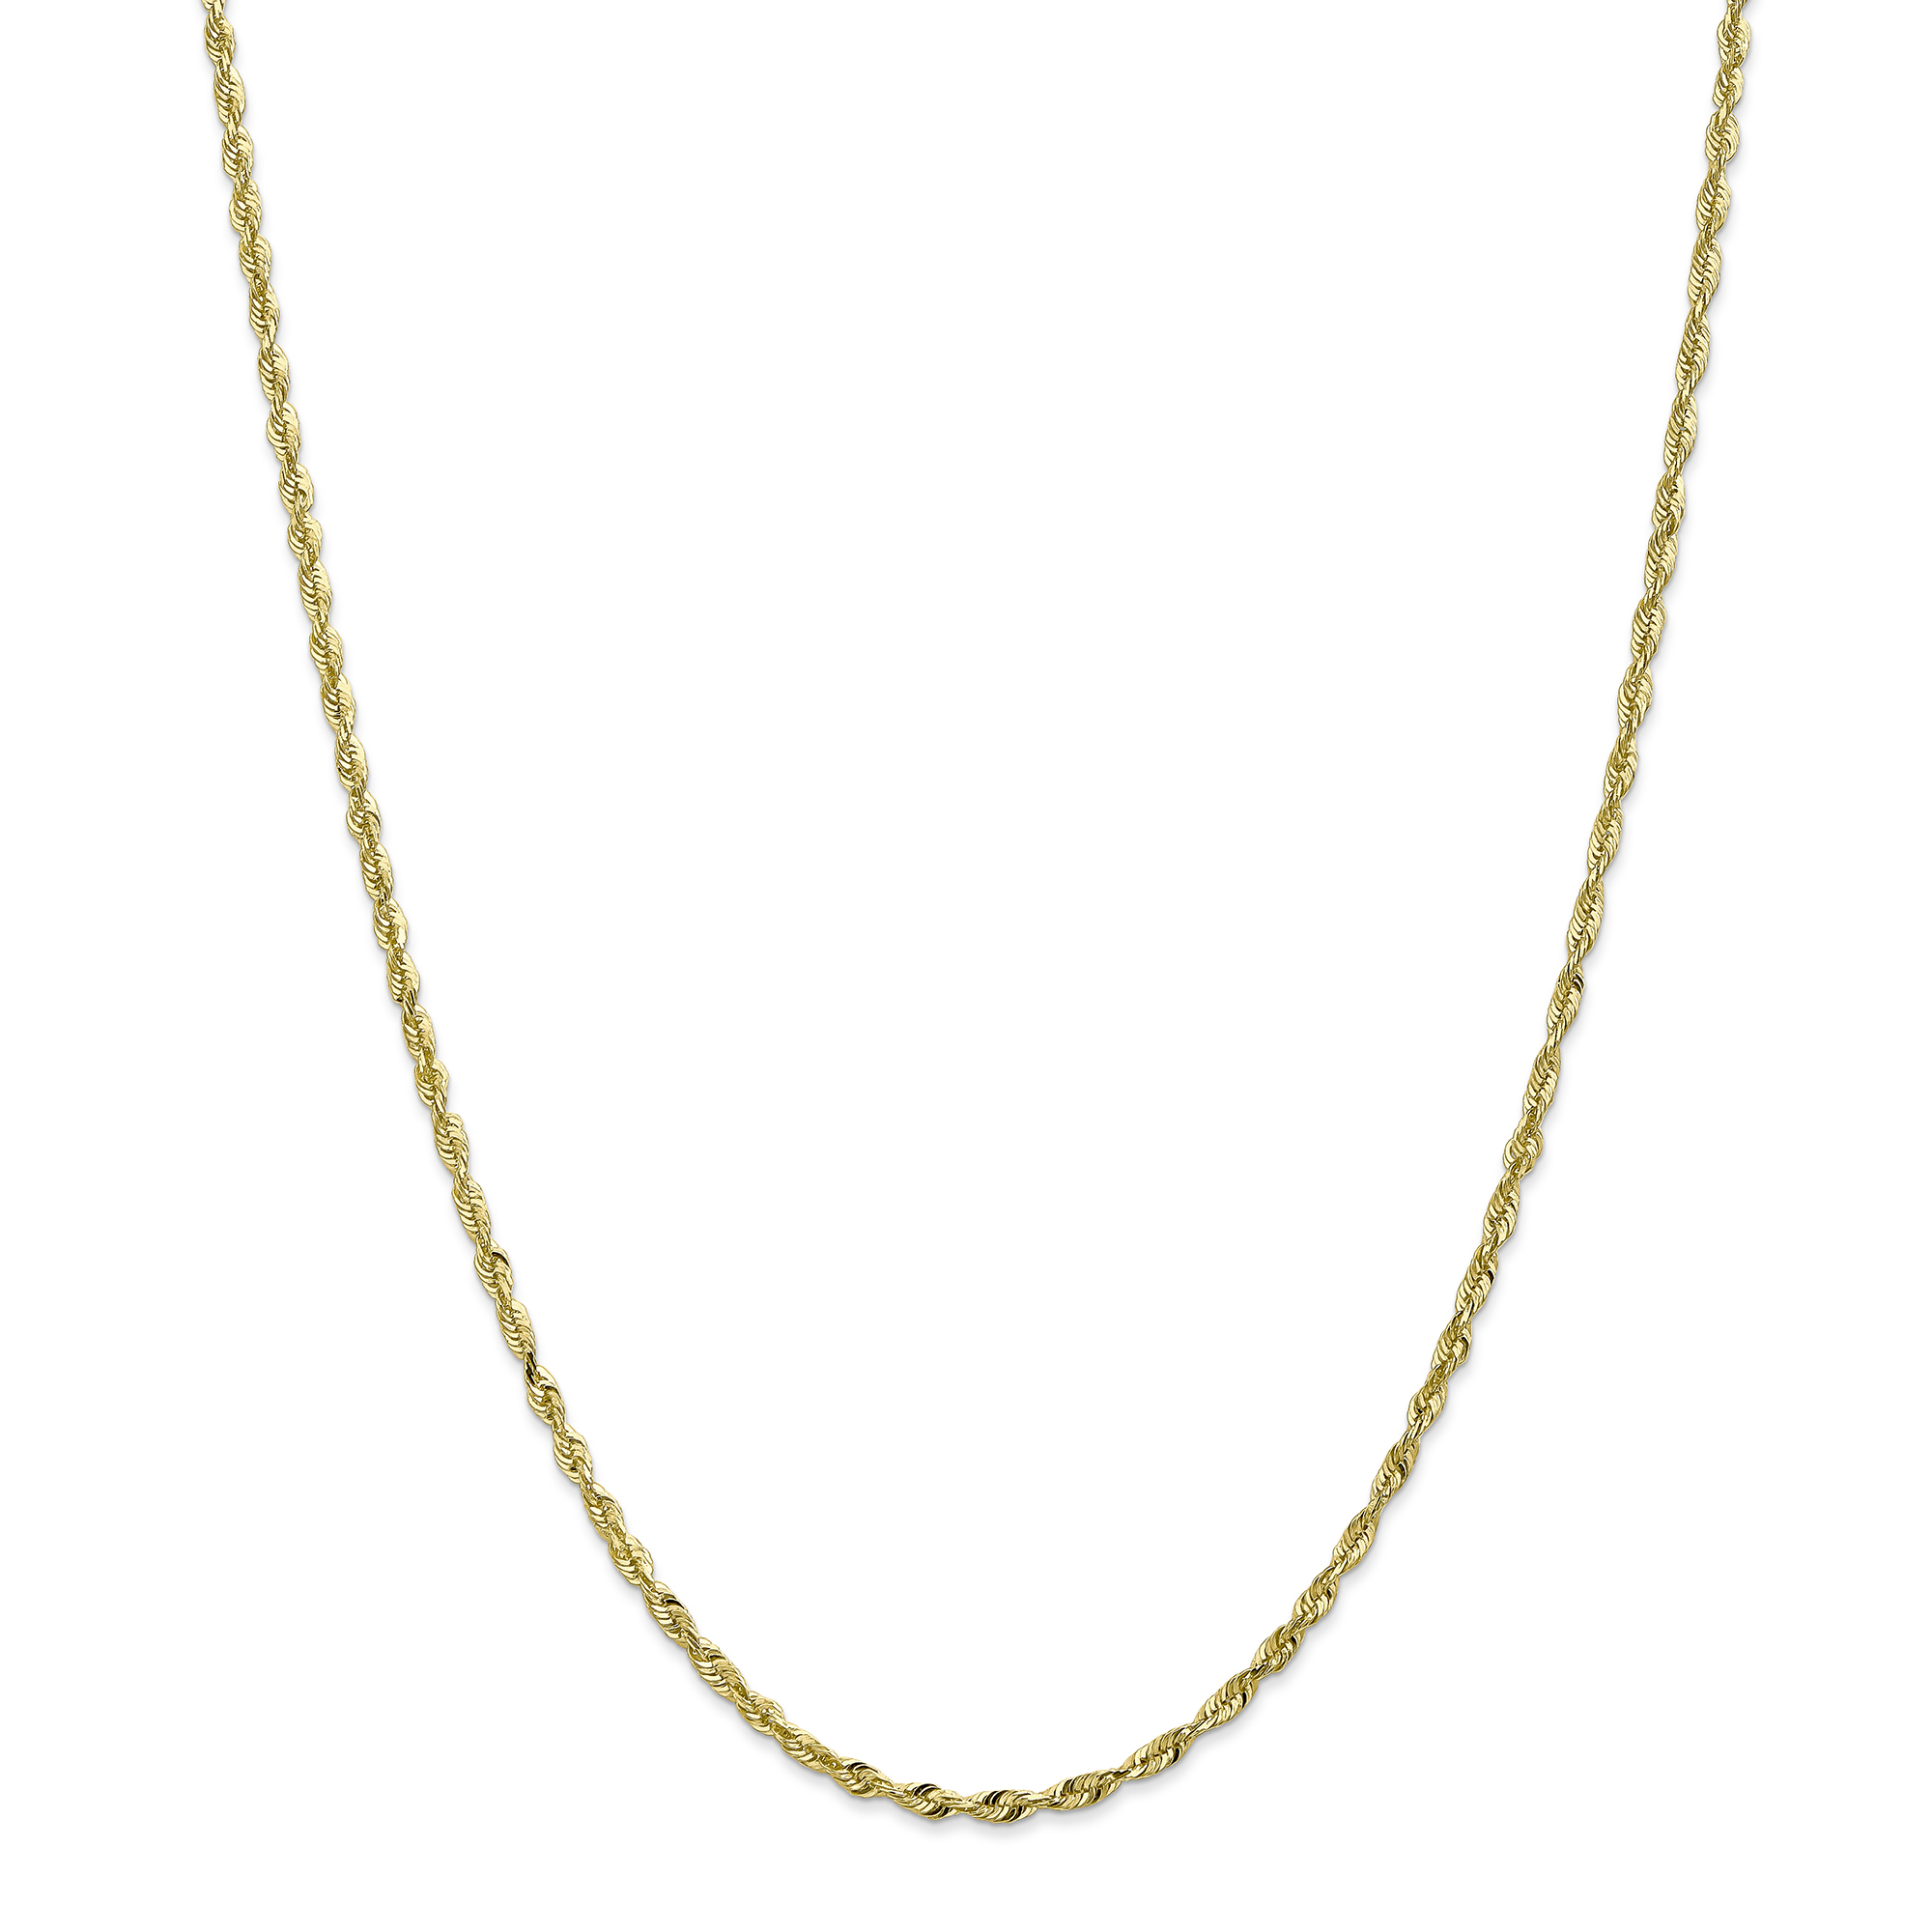 Roy Rose Jewelry 10K Yellow Gold 2.55mm Diamond-cut Extra-Lite Rope Chain Anklet Bracelet ~ Length 9'' inches